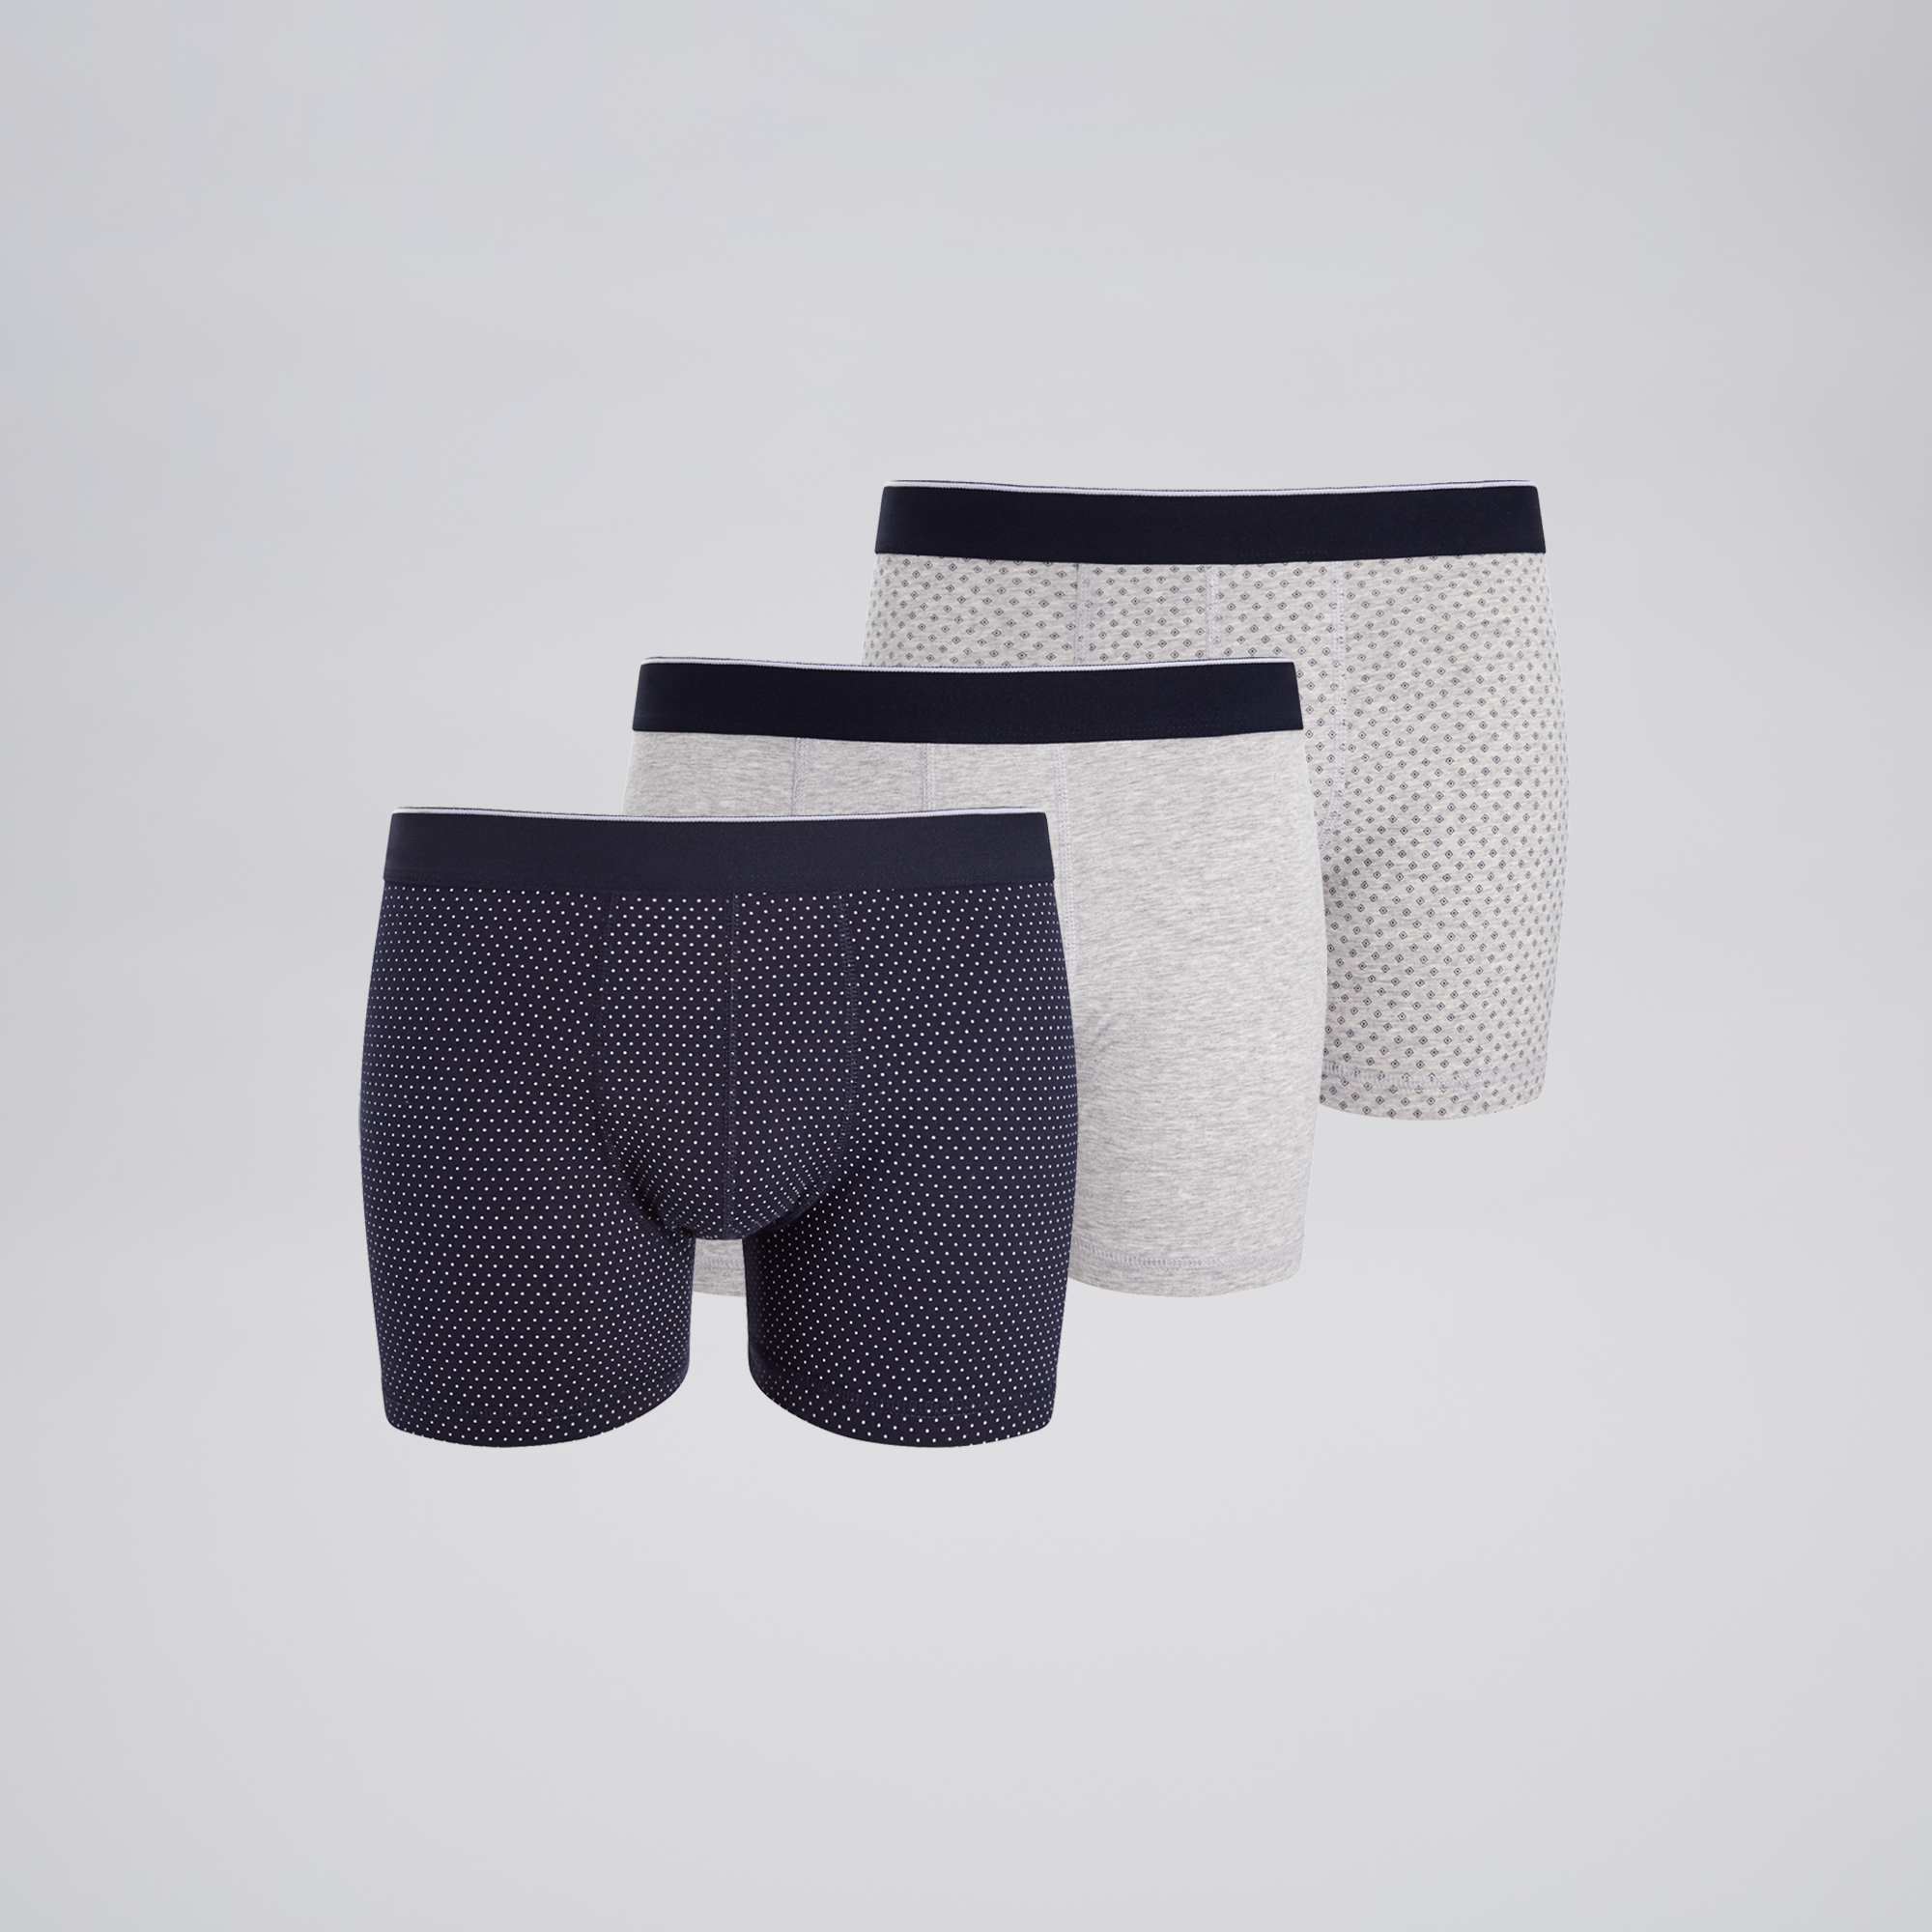 lot de 3 boxers fantaisies homme bleu pois gris kiabi. Black Bedroom Furniture Sets. Home Design Ideas